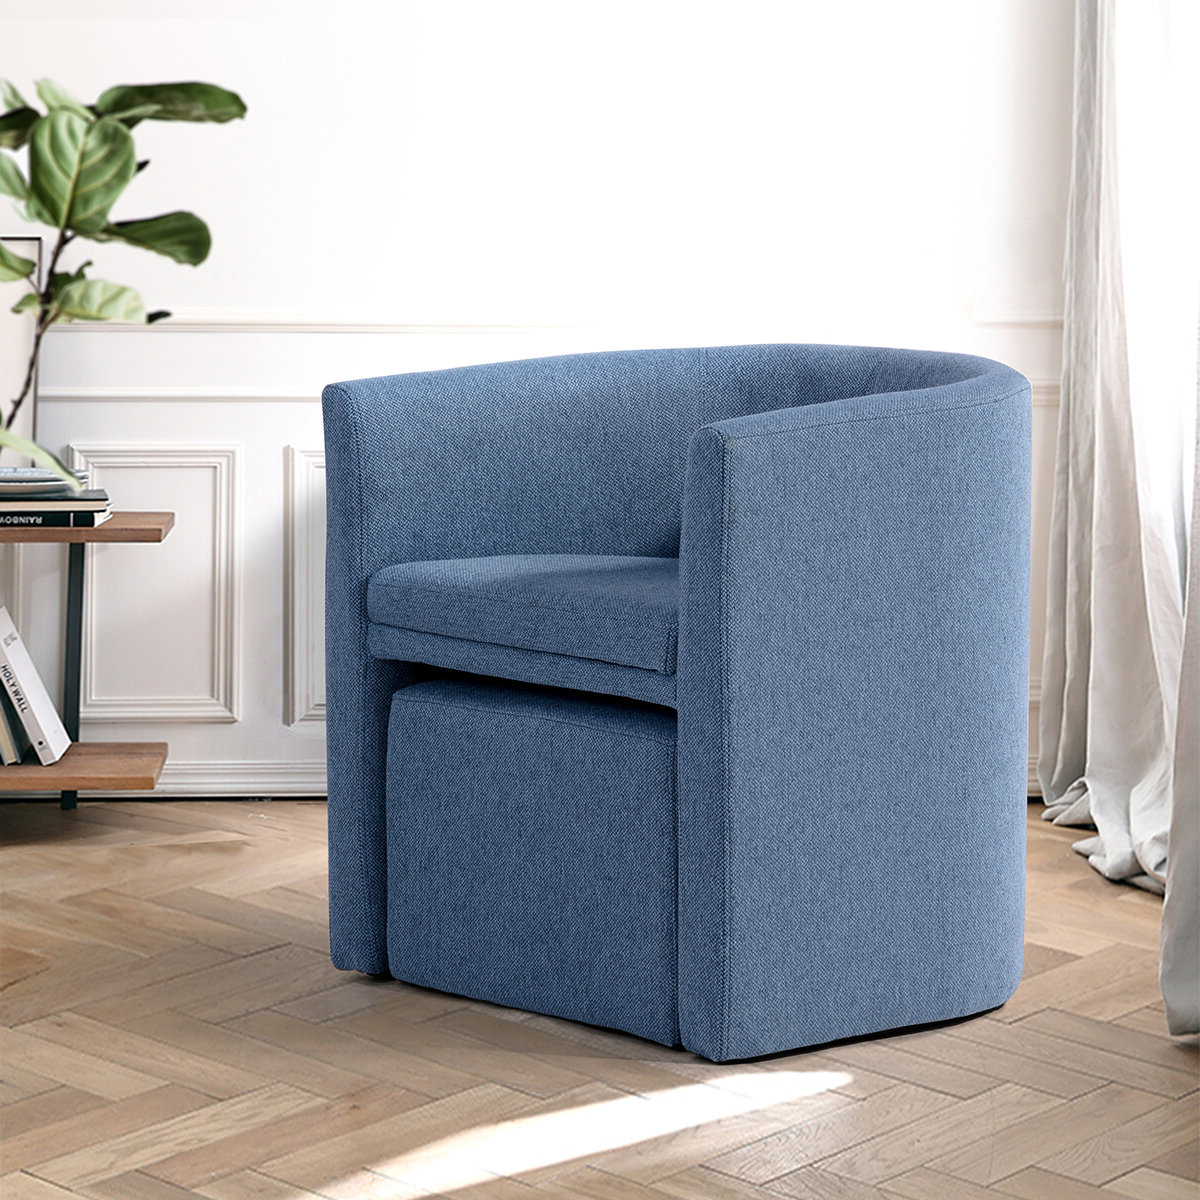 Well Liked Ansis Barrel Chair And Ottoman Pertaining To Briseno Barrel Chairs (View 5 of 20)